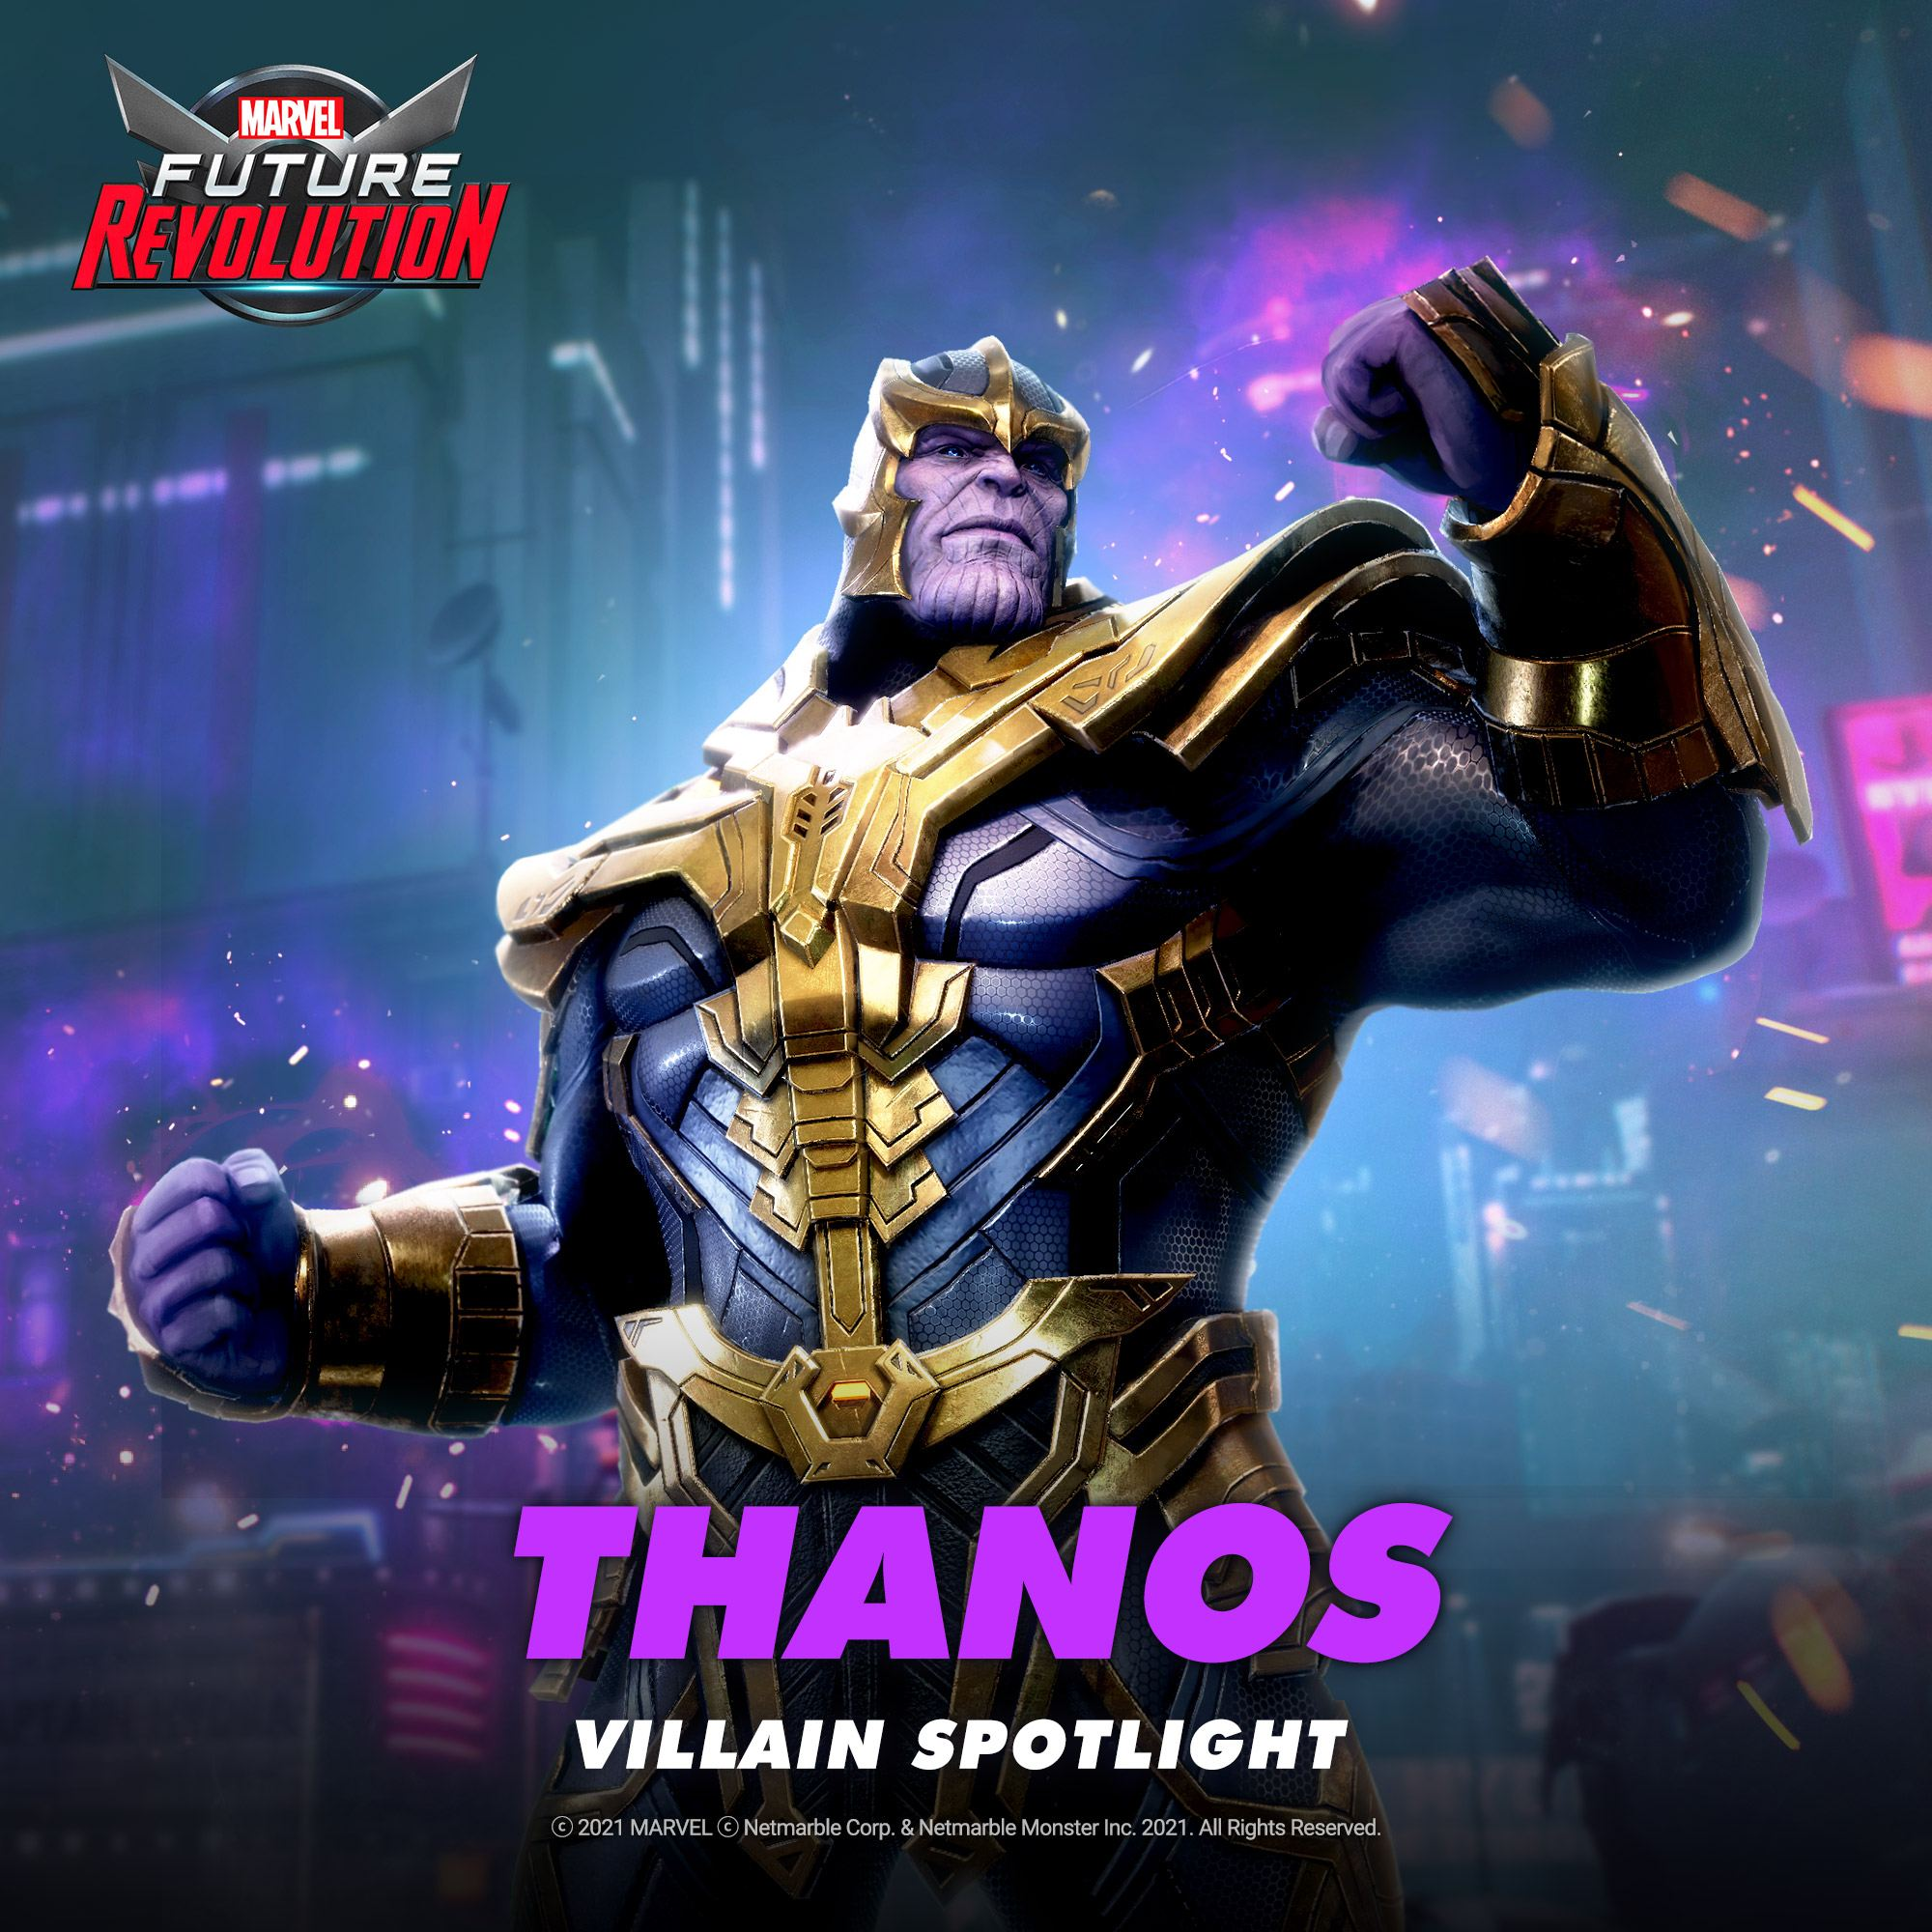 Everything You Need to Know About MARVEL Future Revolution